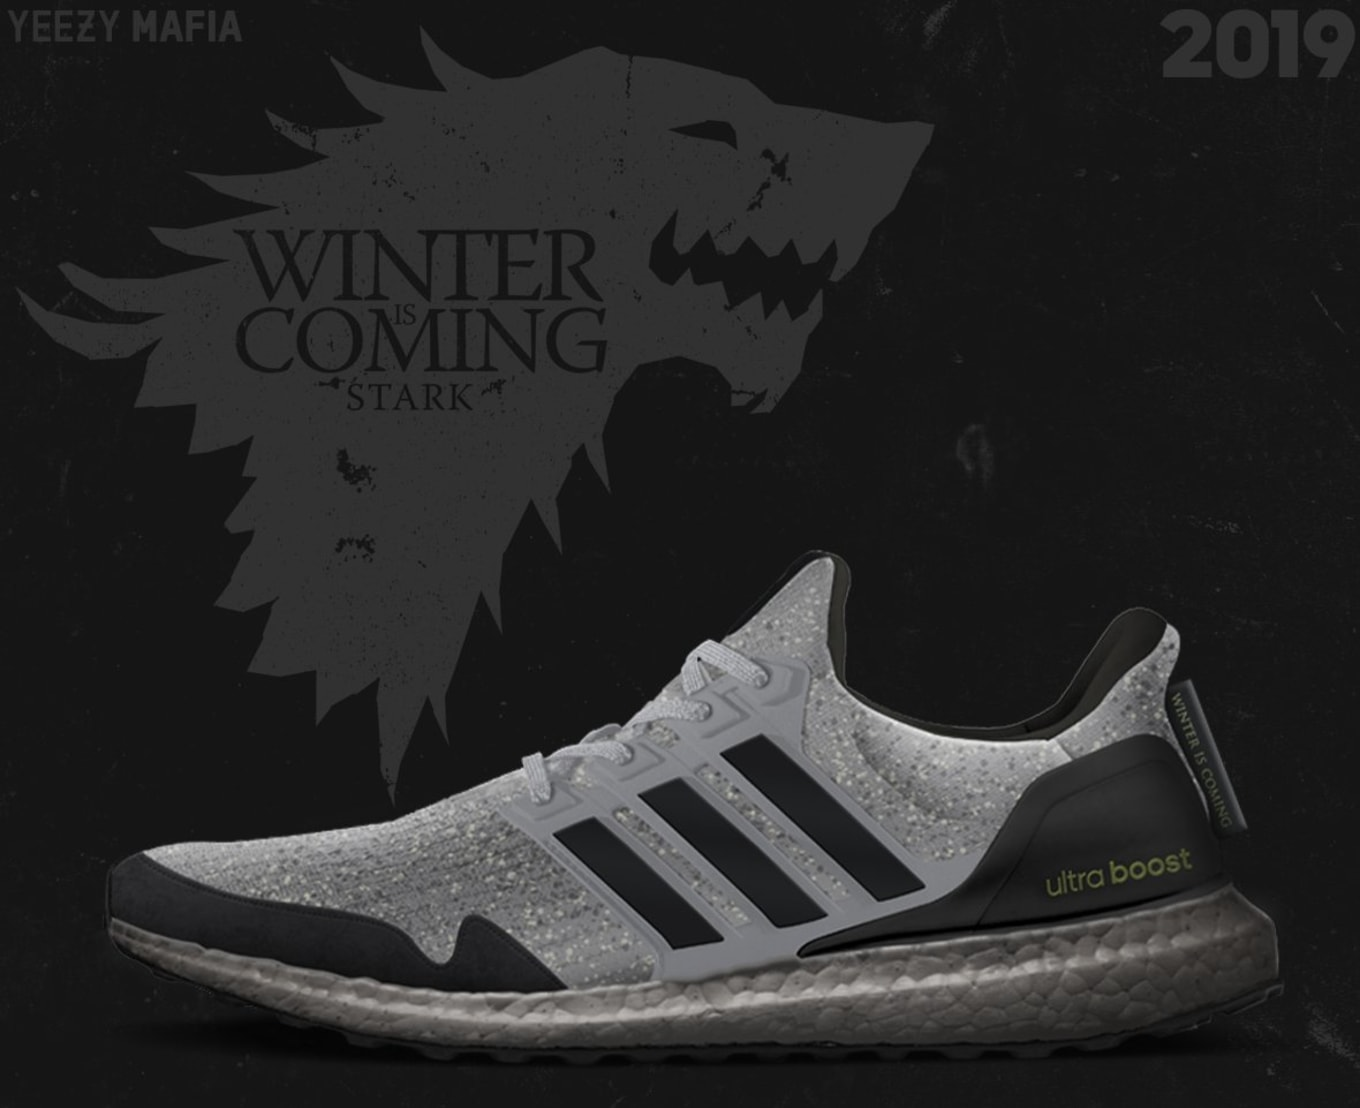 outlet store 2ba44 243e2 Even More Game of Thrones x Adidas Ultra Boosts for 2019